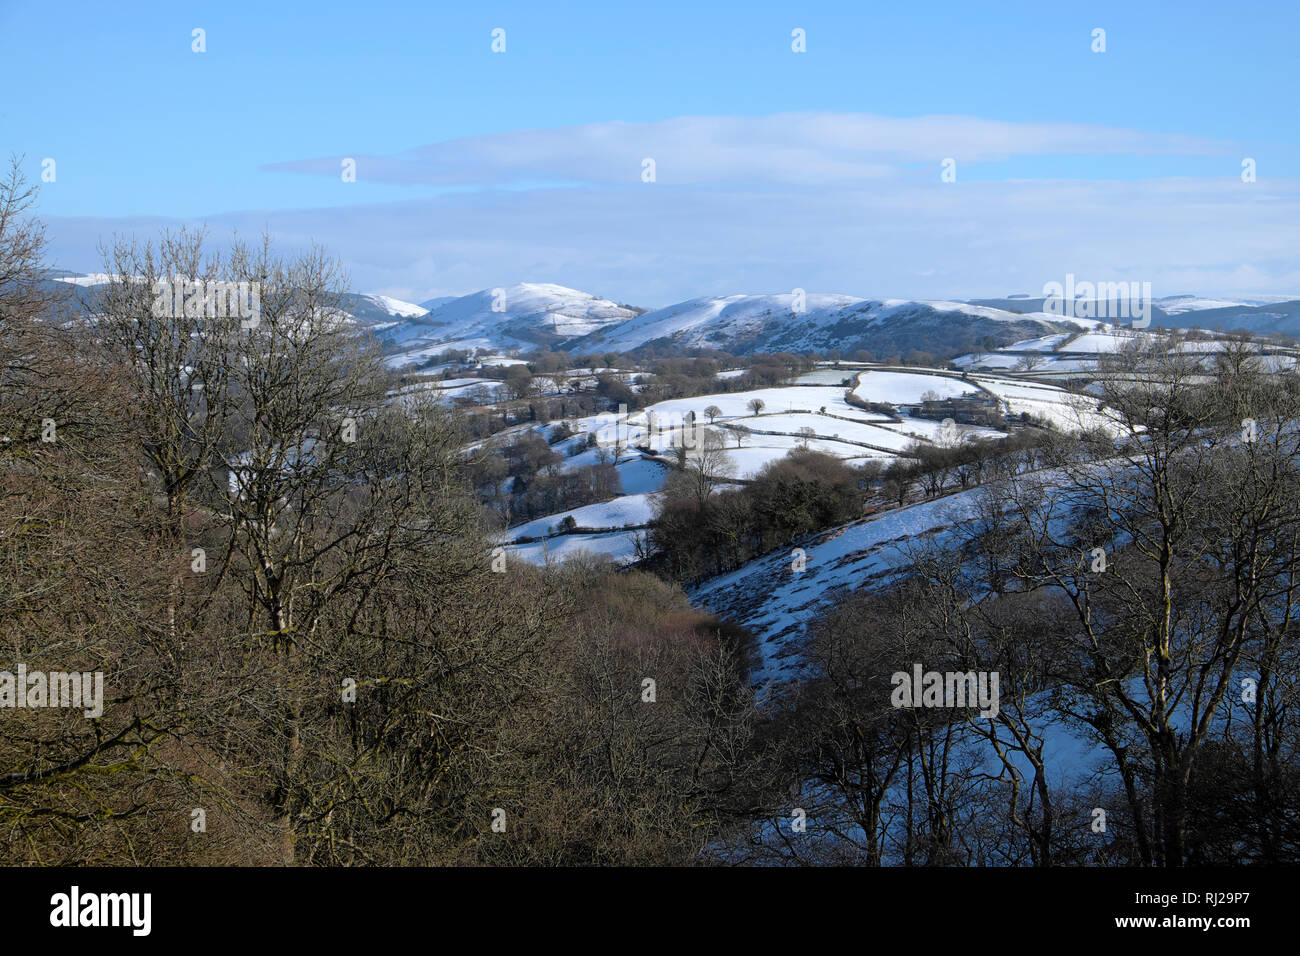 Snow on hills in sunny winter weather view north from Porth y Rhyd Llanwrda near Llandovery in Carmarthenshire Wales UK in February 2019  KATHY DEWITT - Stock Image